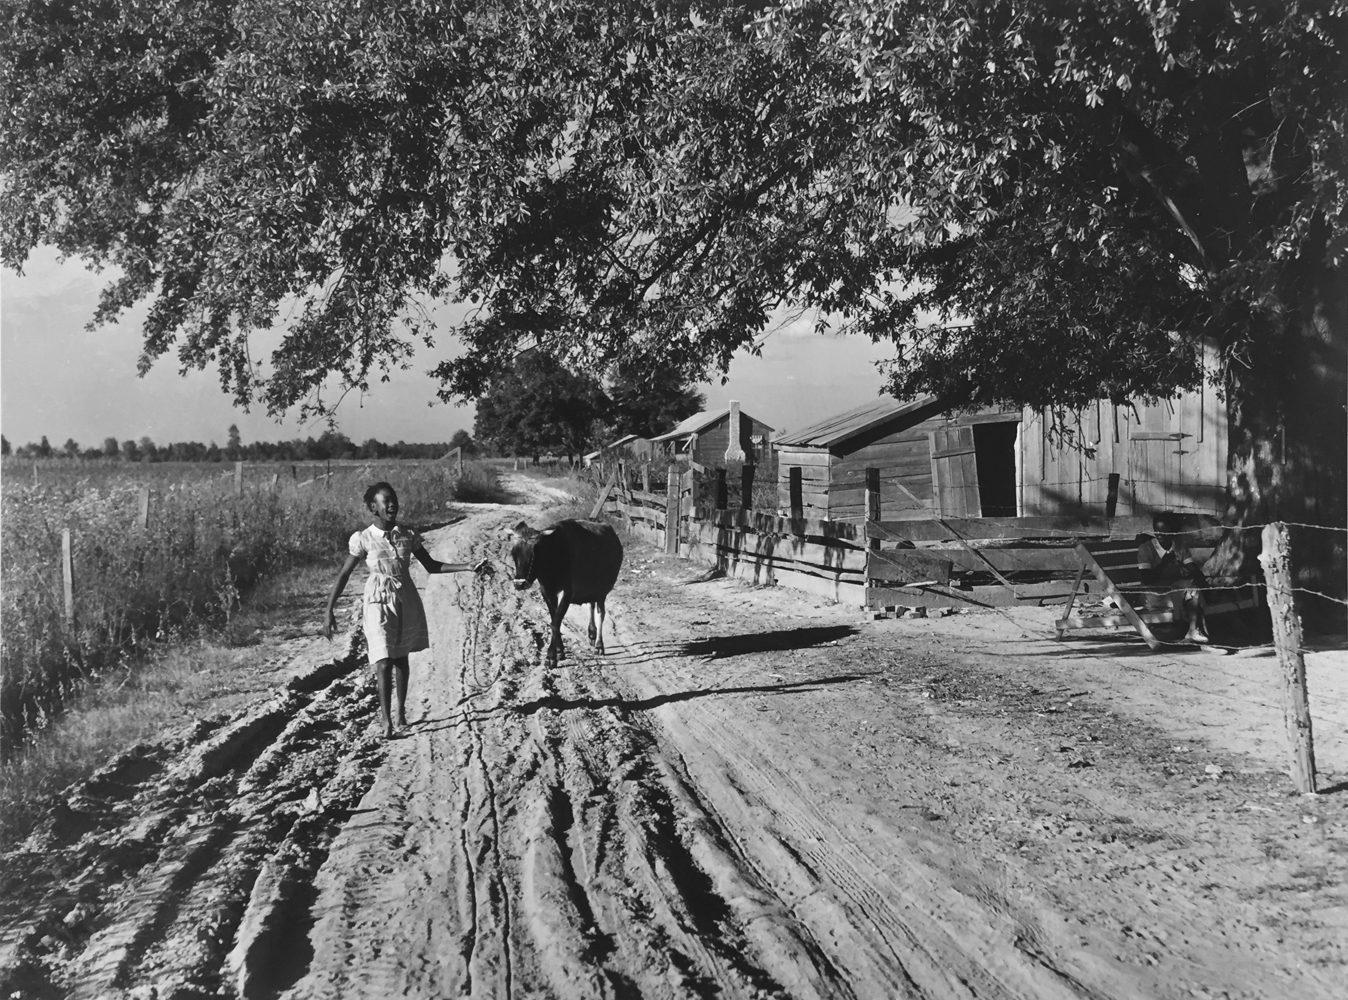 Marion Post Wolcott, The daughter of Cube Walker, a tenant purchase client, bringing home their cow from the fields in the evening, Belzoni, Mississippi, 1939, gelatin silver print, 11 x 14 inches, $3000.